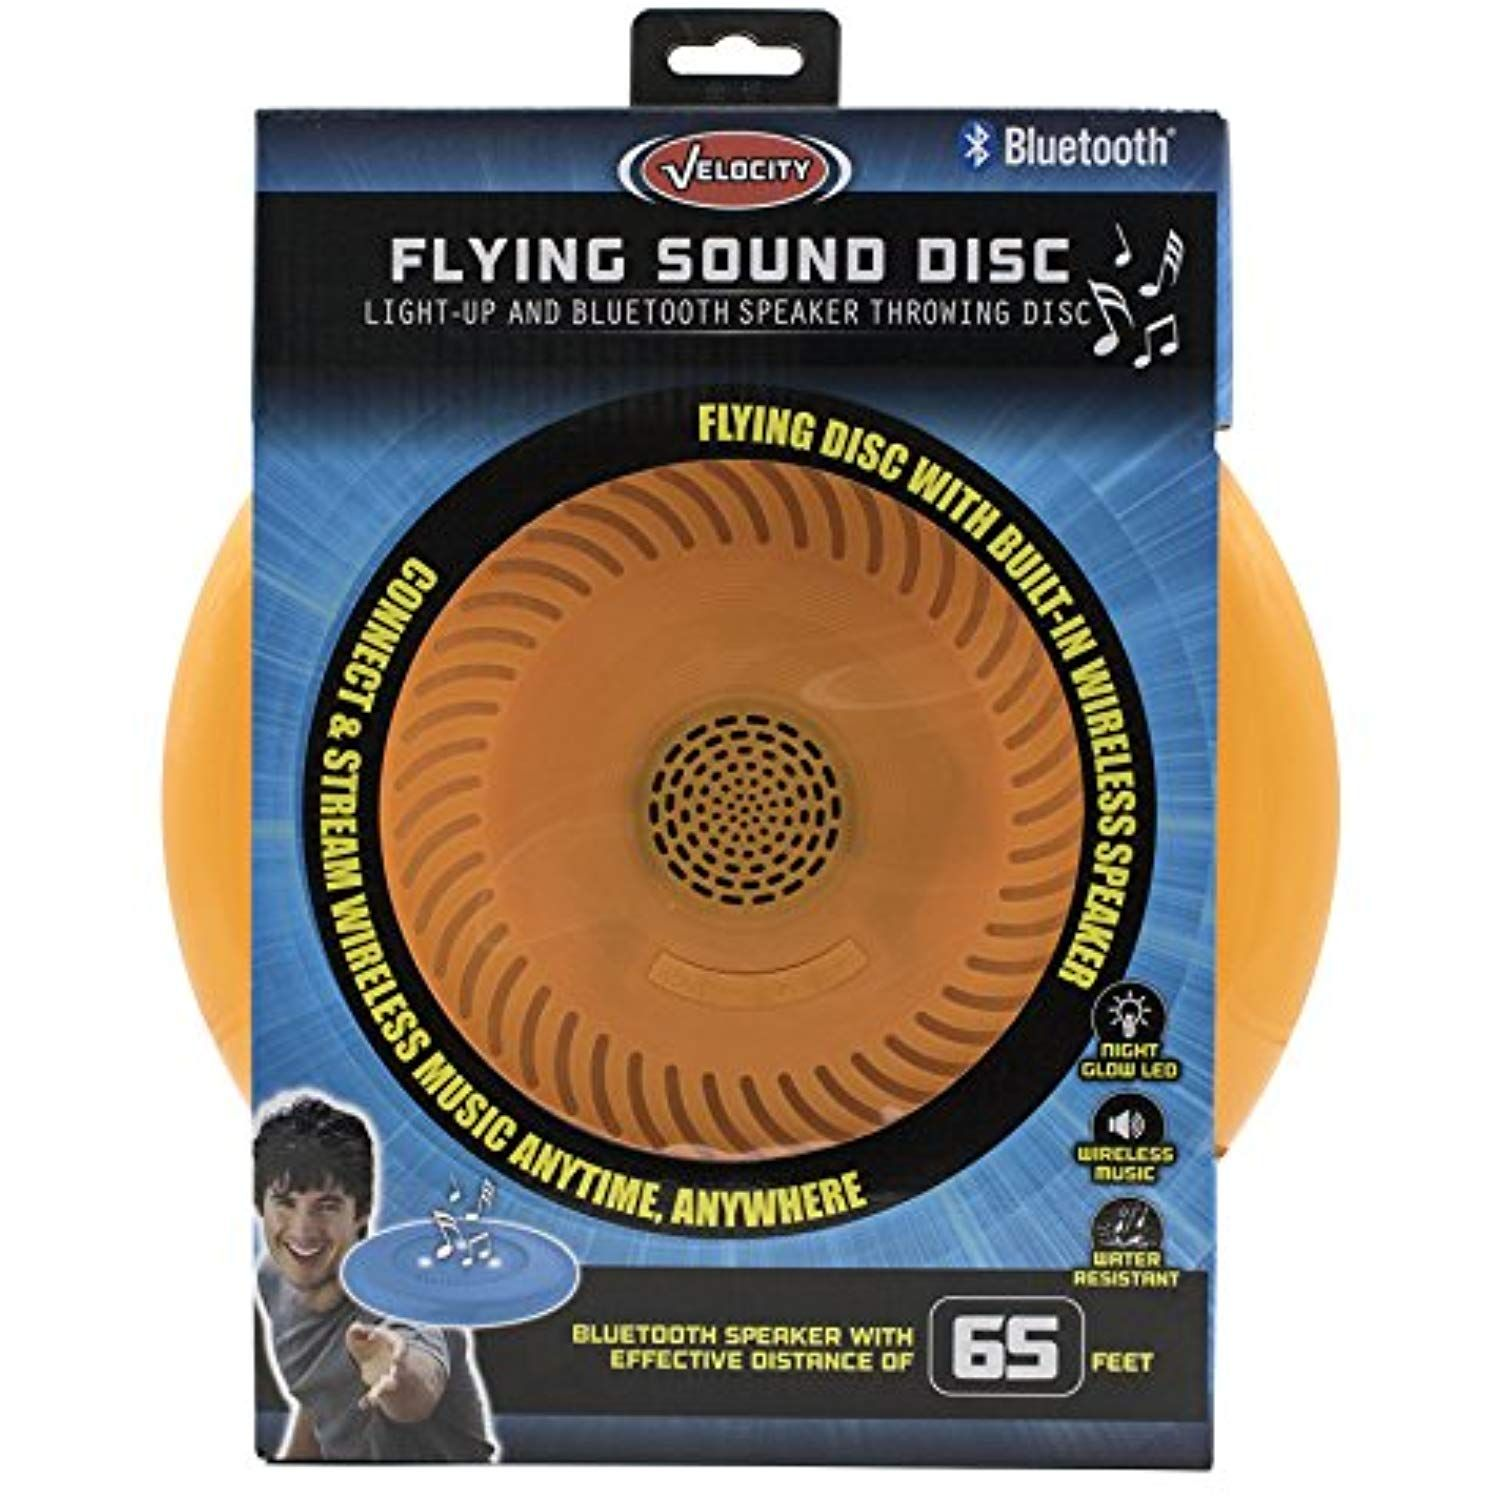 Flying Sound Disc - Light-Up and Bluetooth Speaker ...